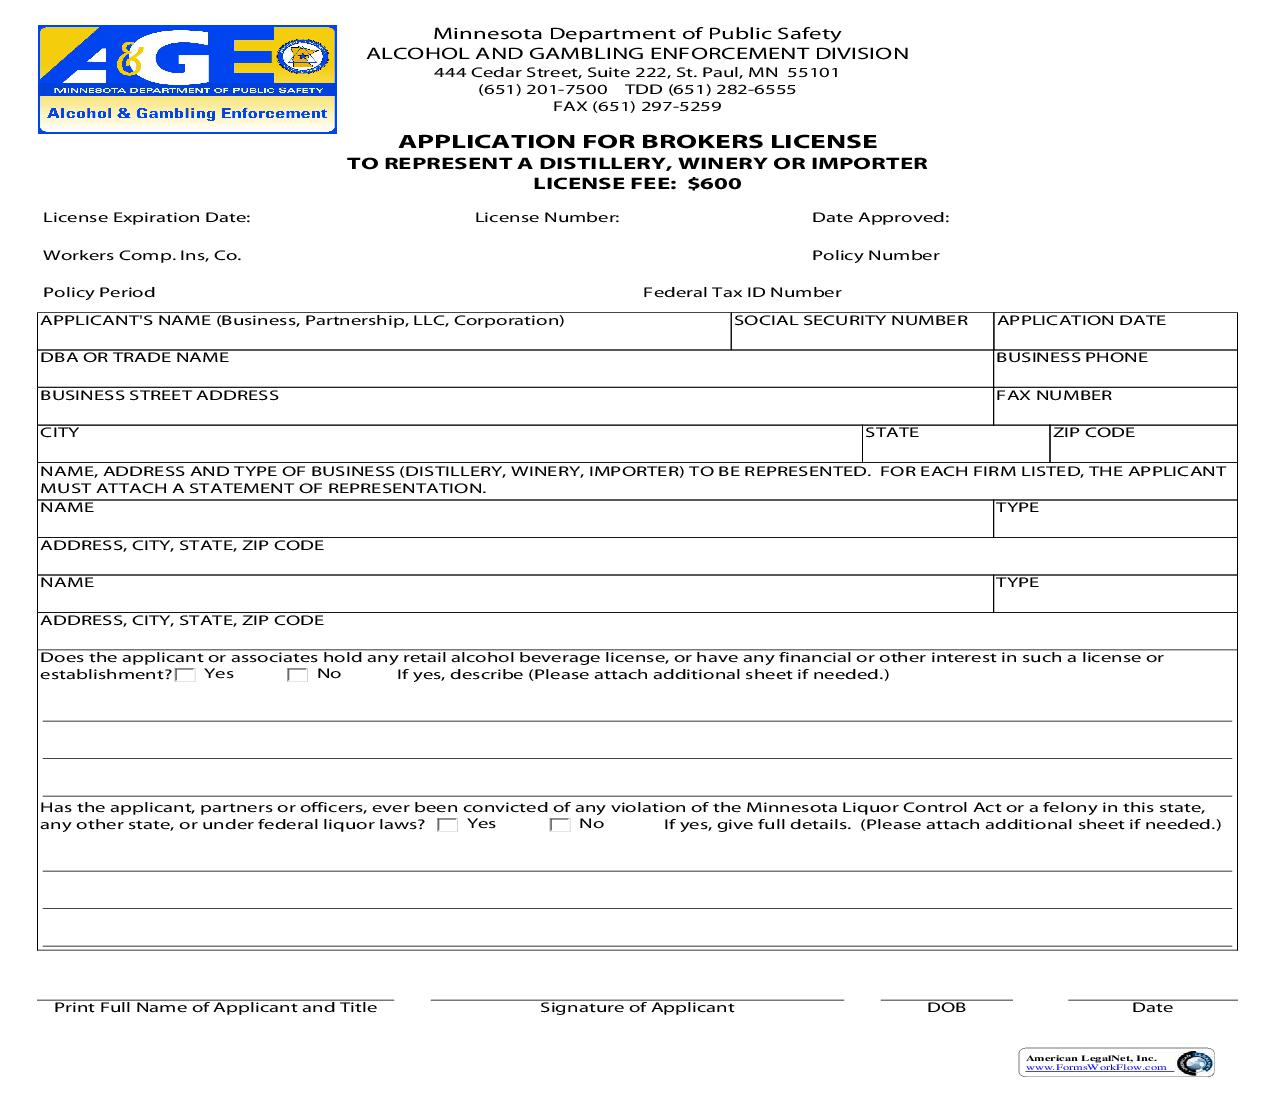 Application For Brokers License To Represent A Distillery Winery Or Importer | Pdf Fpdf Doc Docx | Minnesota